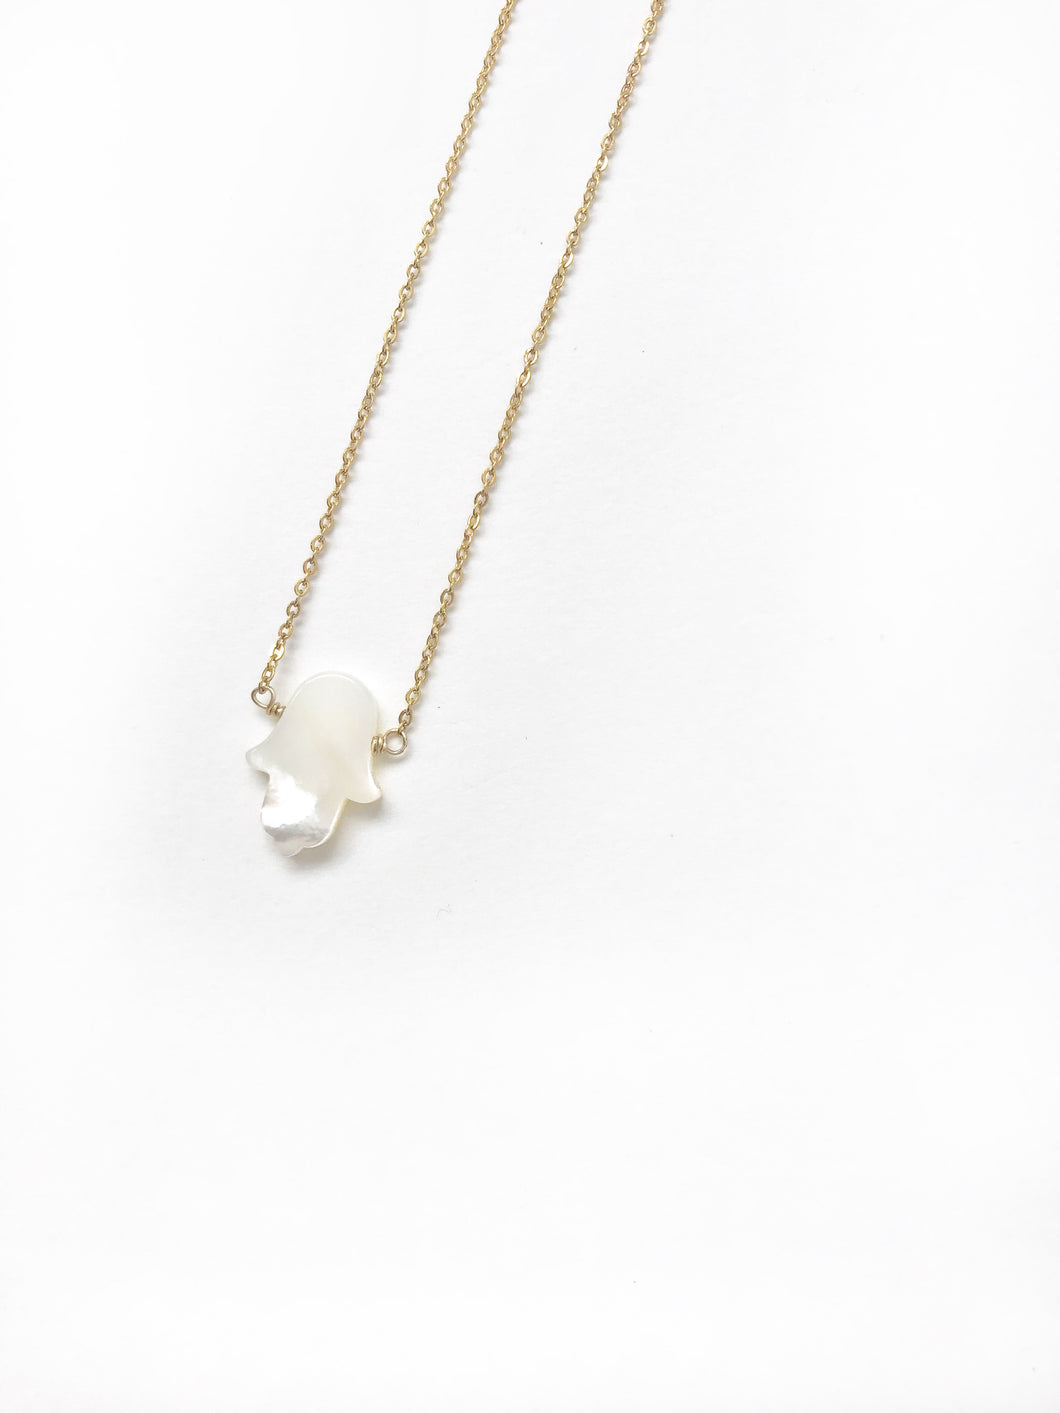 Mother Pearl Hand Gold Necklace - LoobanysJewelry